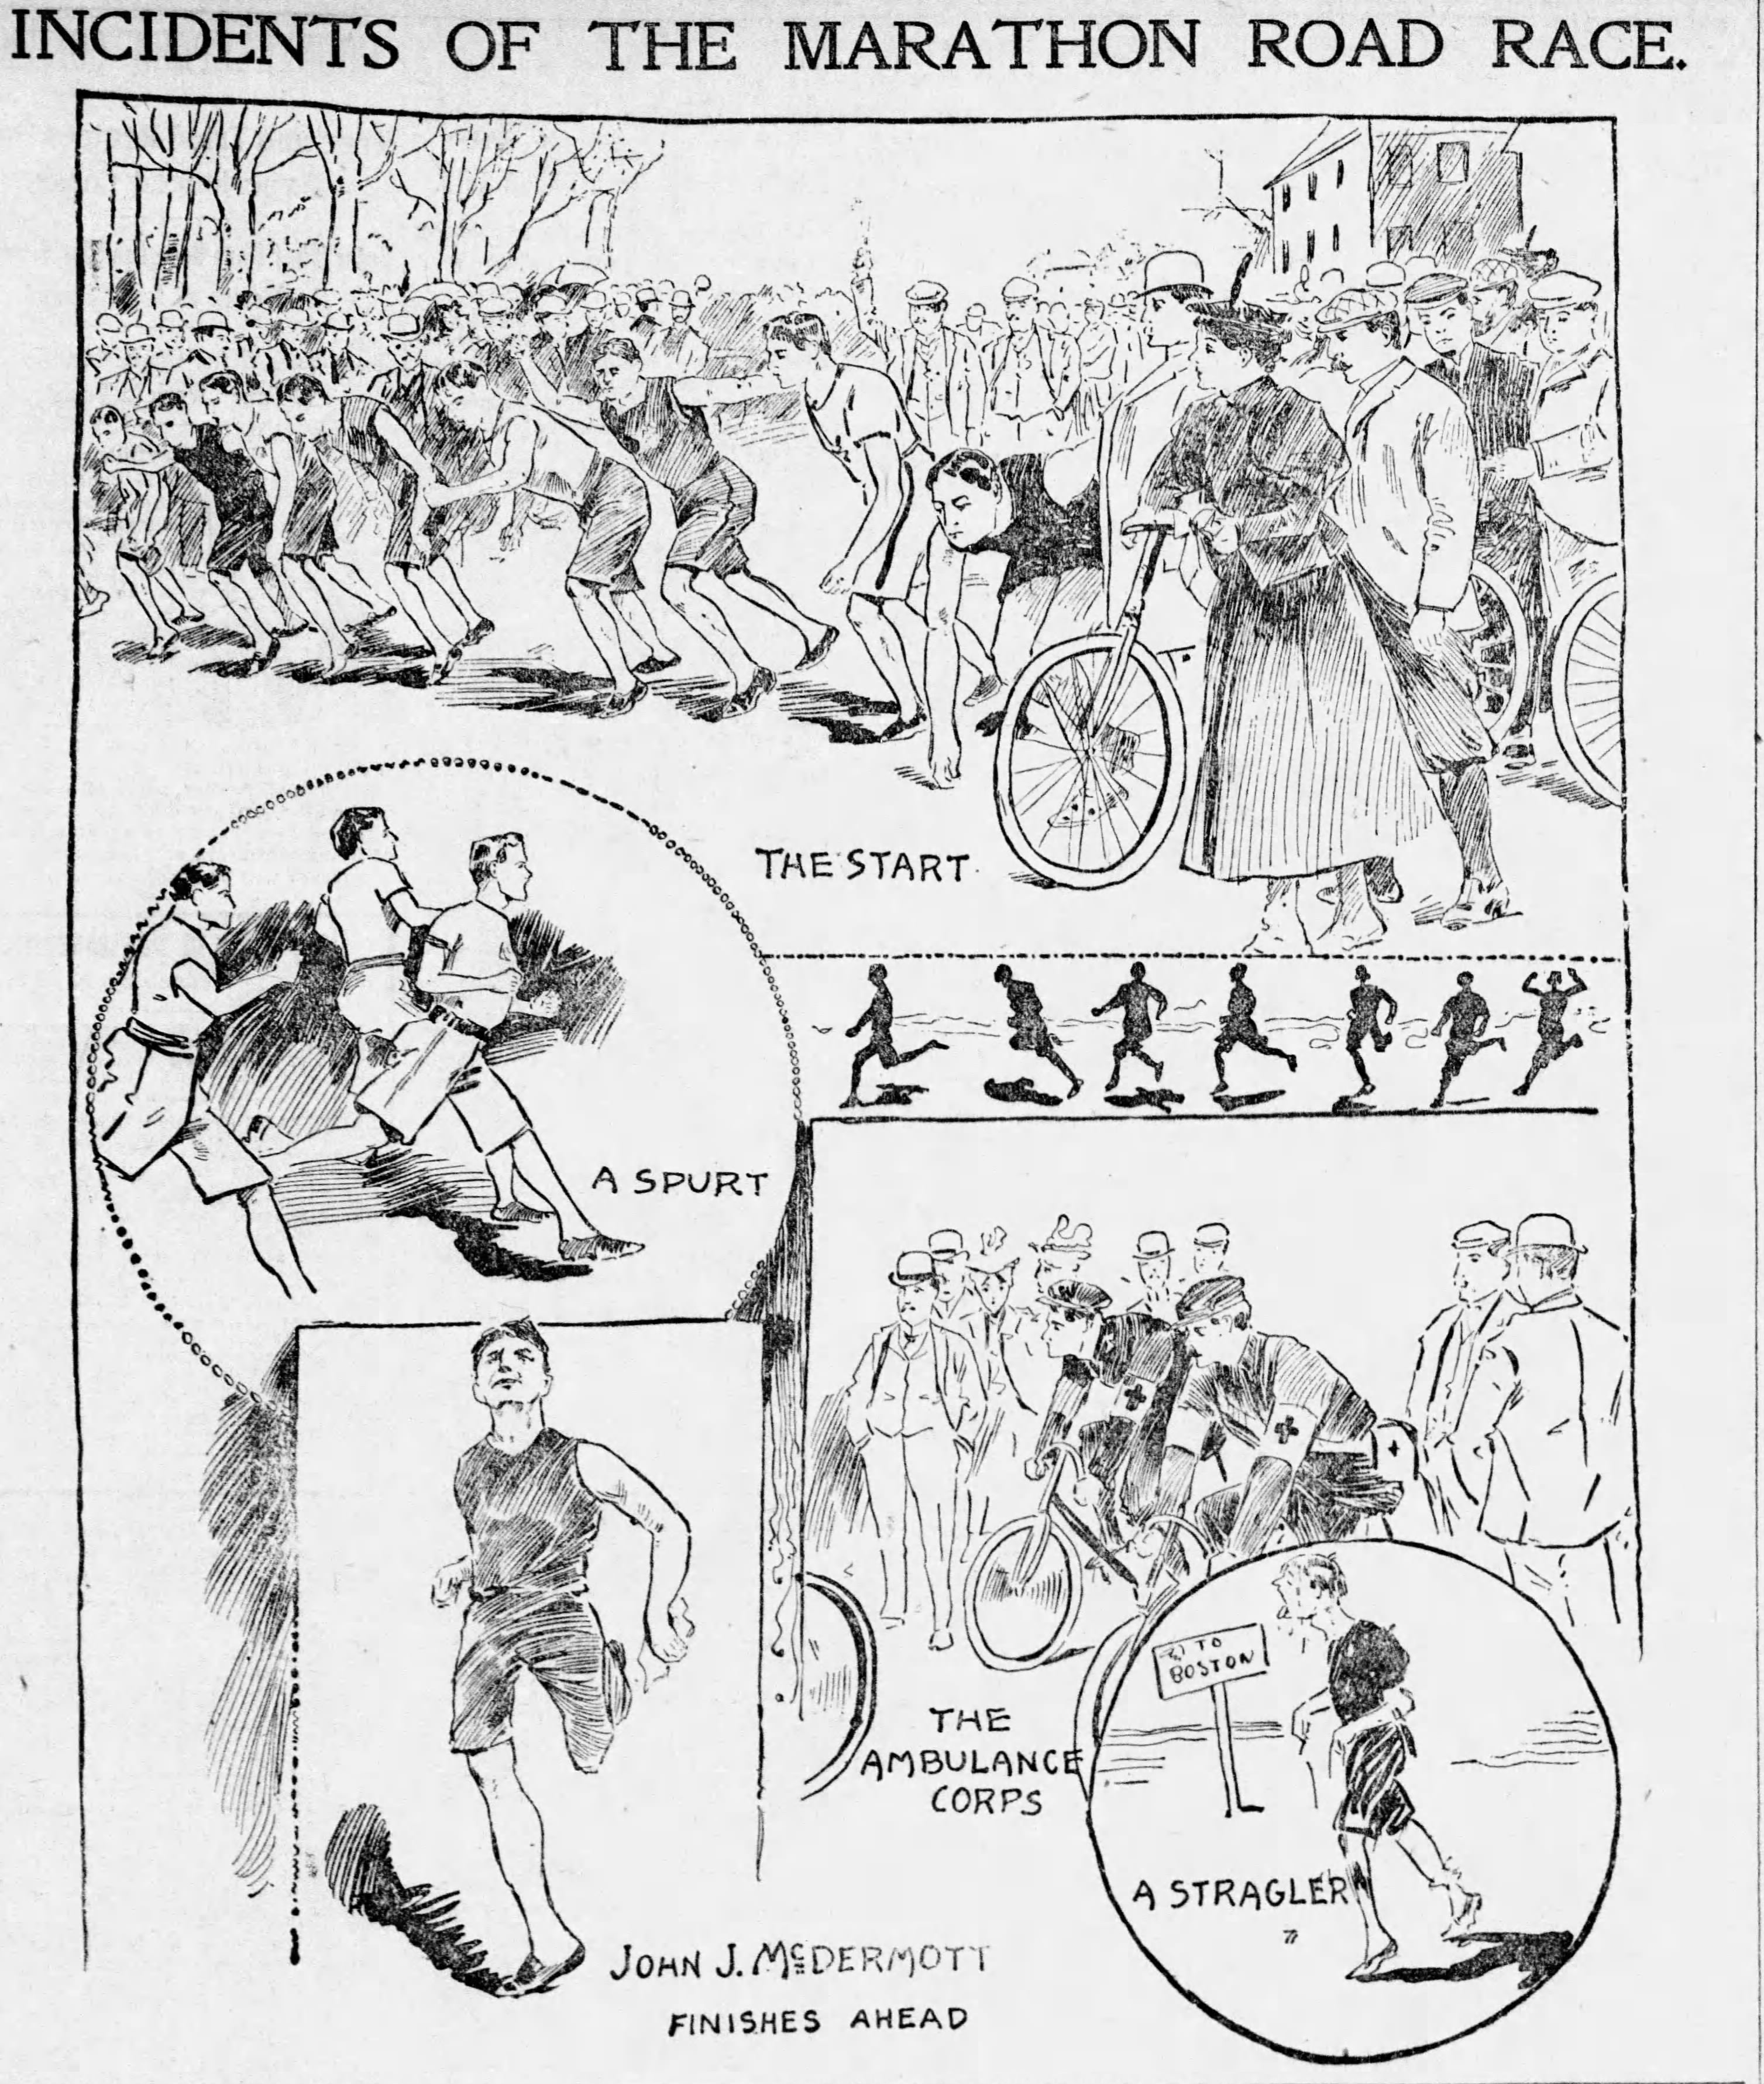 Boston Globe 1897 first Boston Marathon